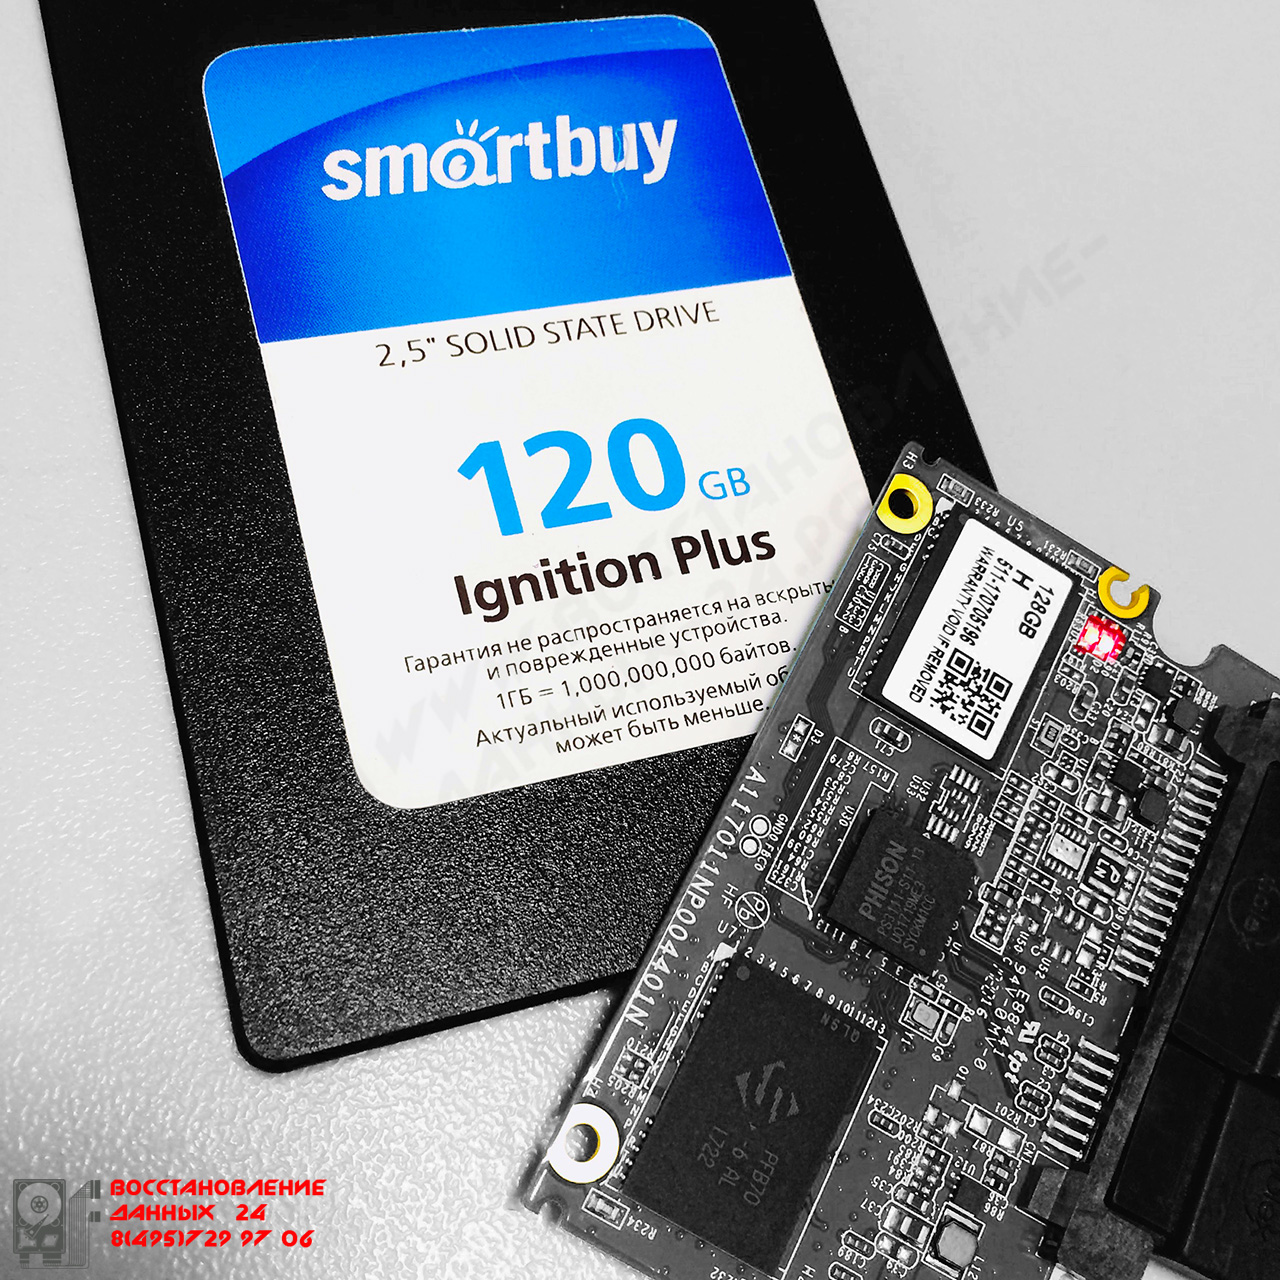 PS3111_(SataFirm_S11)_Vosstanovlenie_dannyh_vozmozhno_SmartBuy_Ignition_Plus